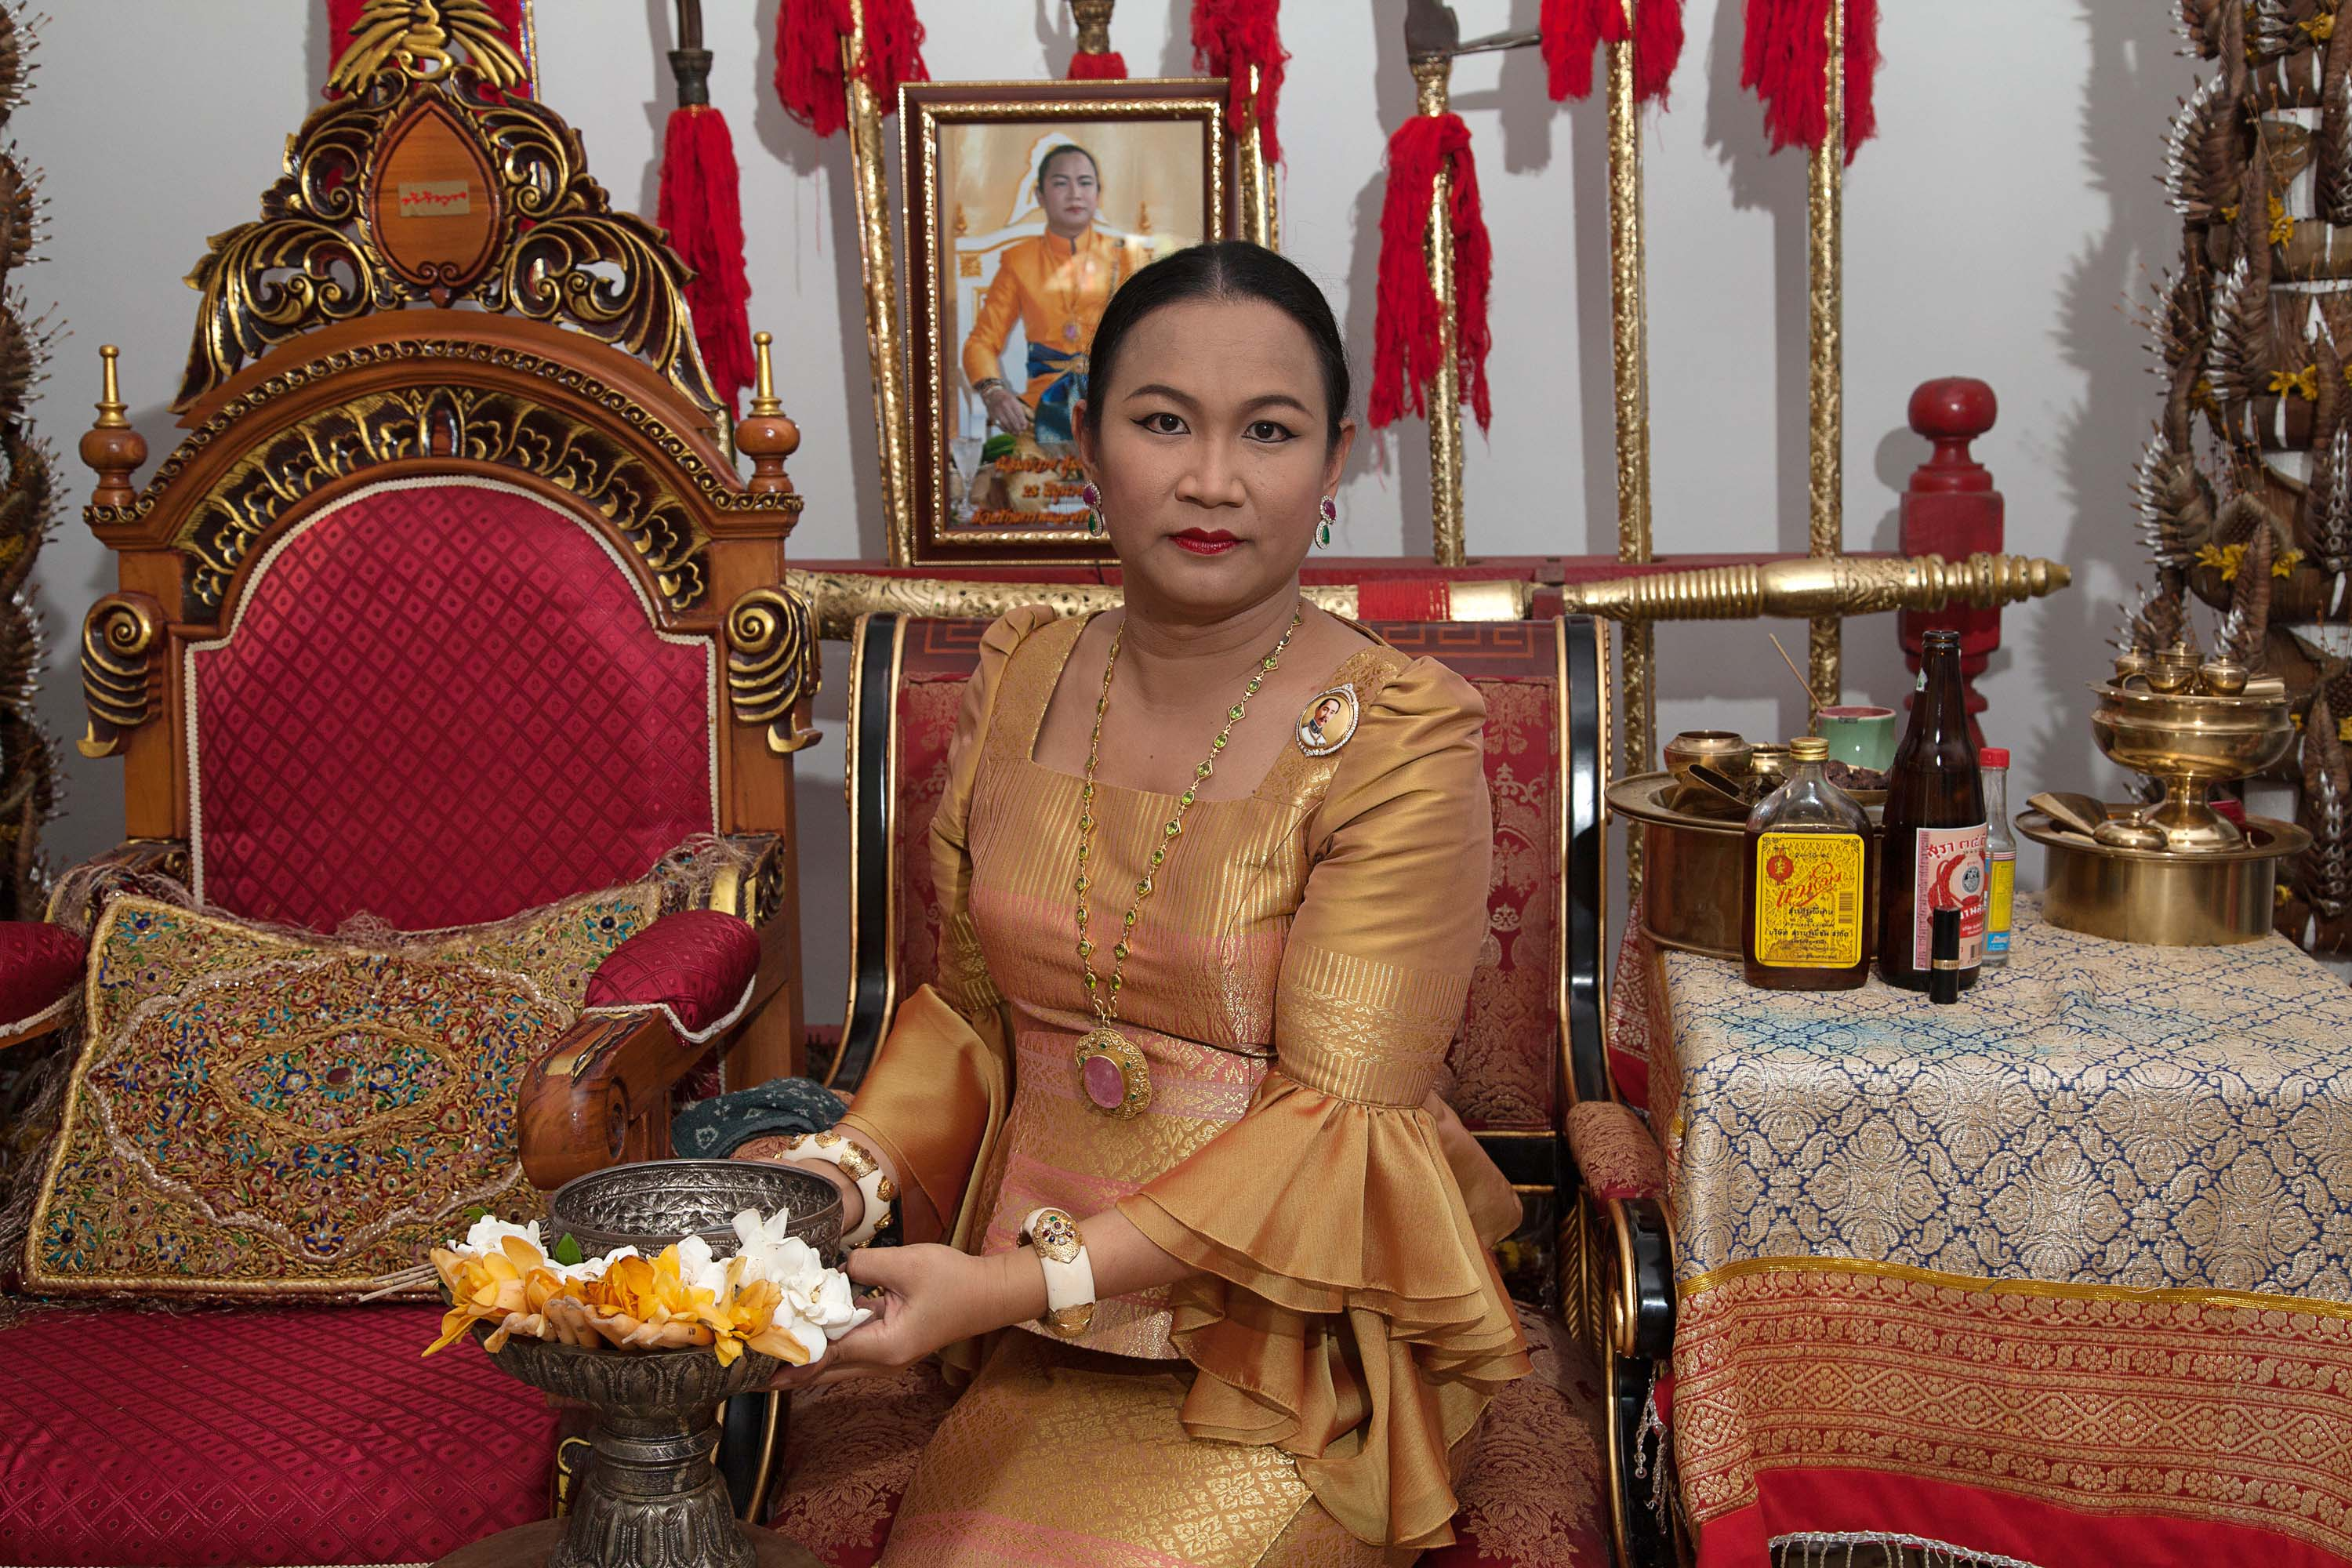 Prem, a transgender woman, who may be possessed by seven different spirits, is one of the most respected maa khii (spirit mediums) in Thailand. People come to see her for spiritual counseling, healing, or good fortune through the intercession of the spirits that possess her.